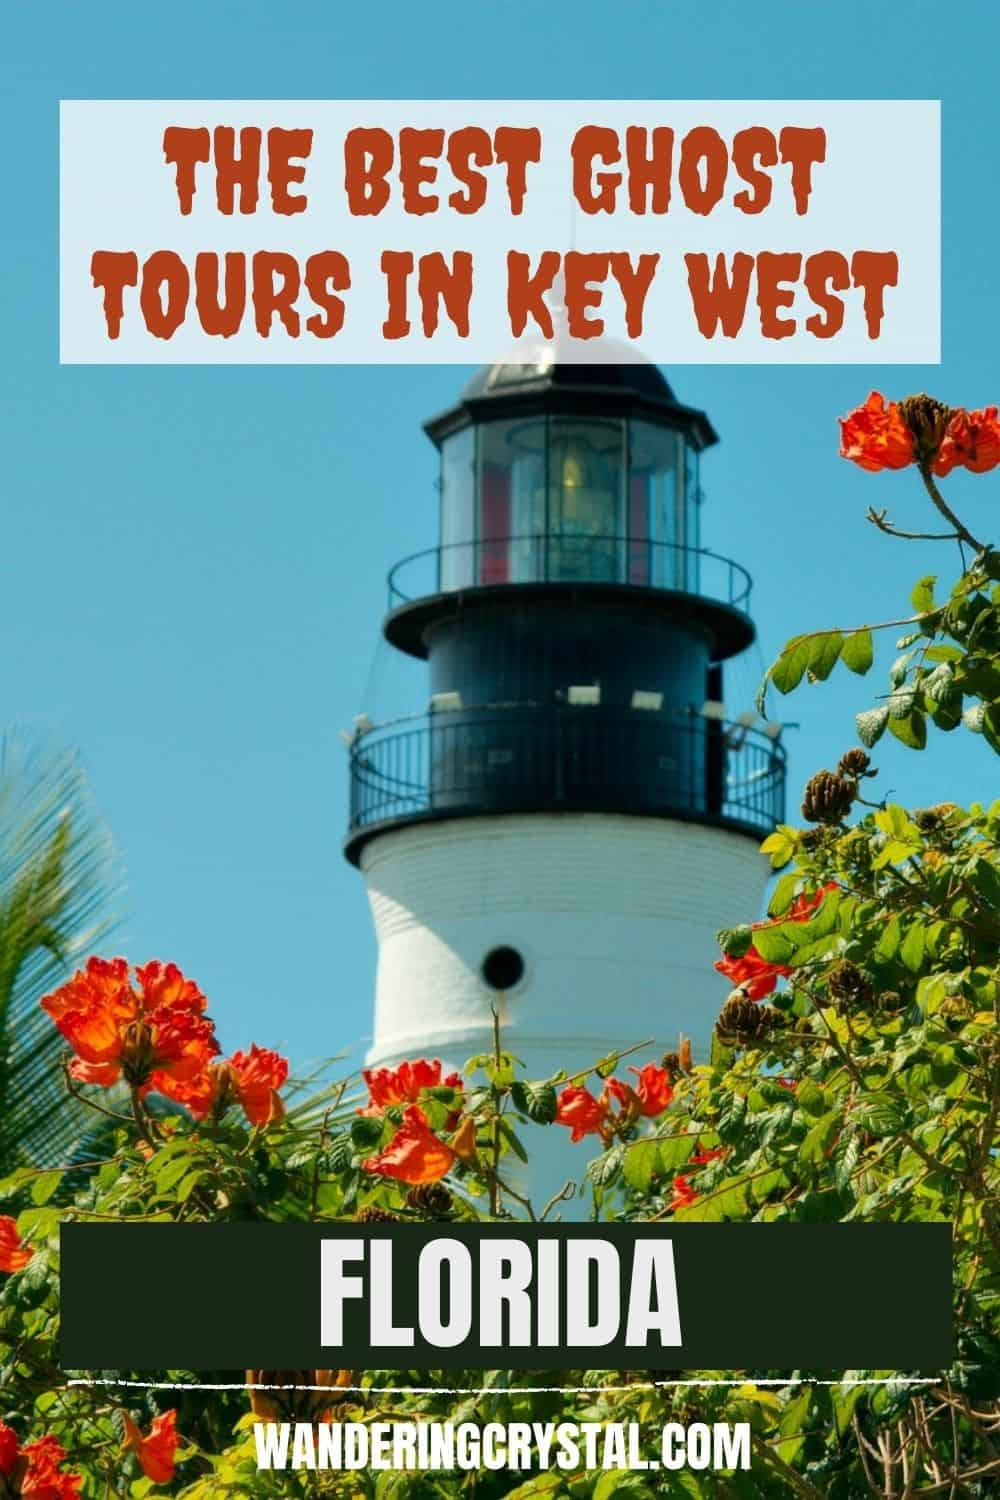 The Best Ghost Tours in Key West, FL